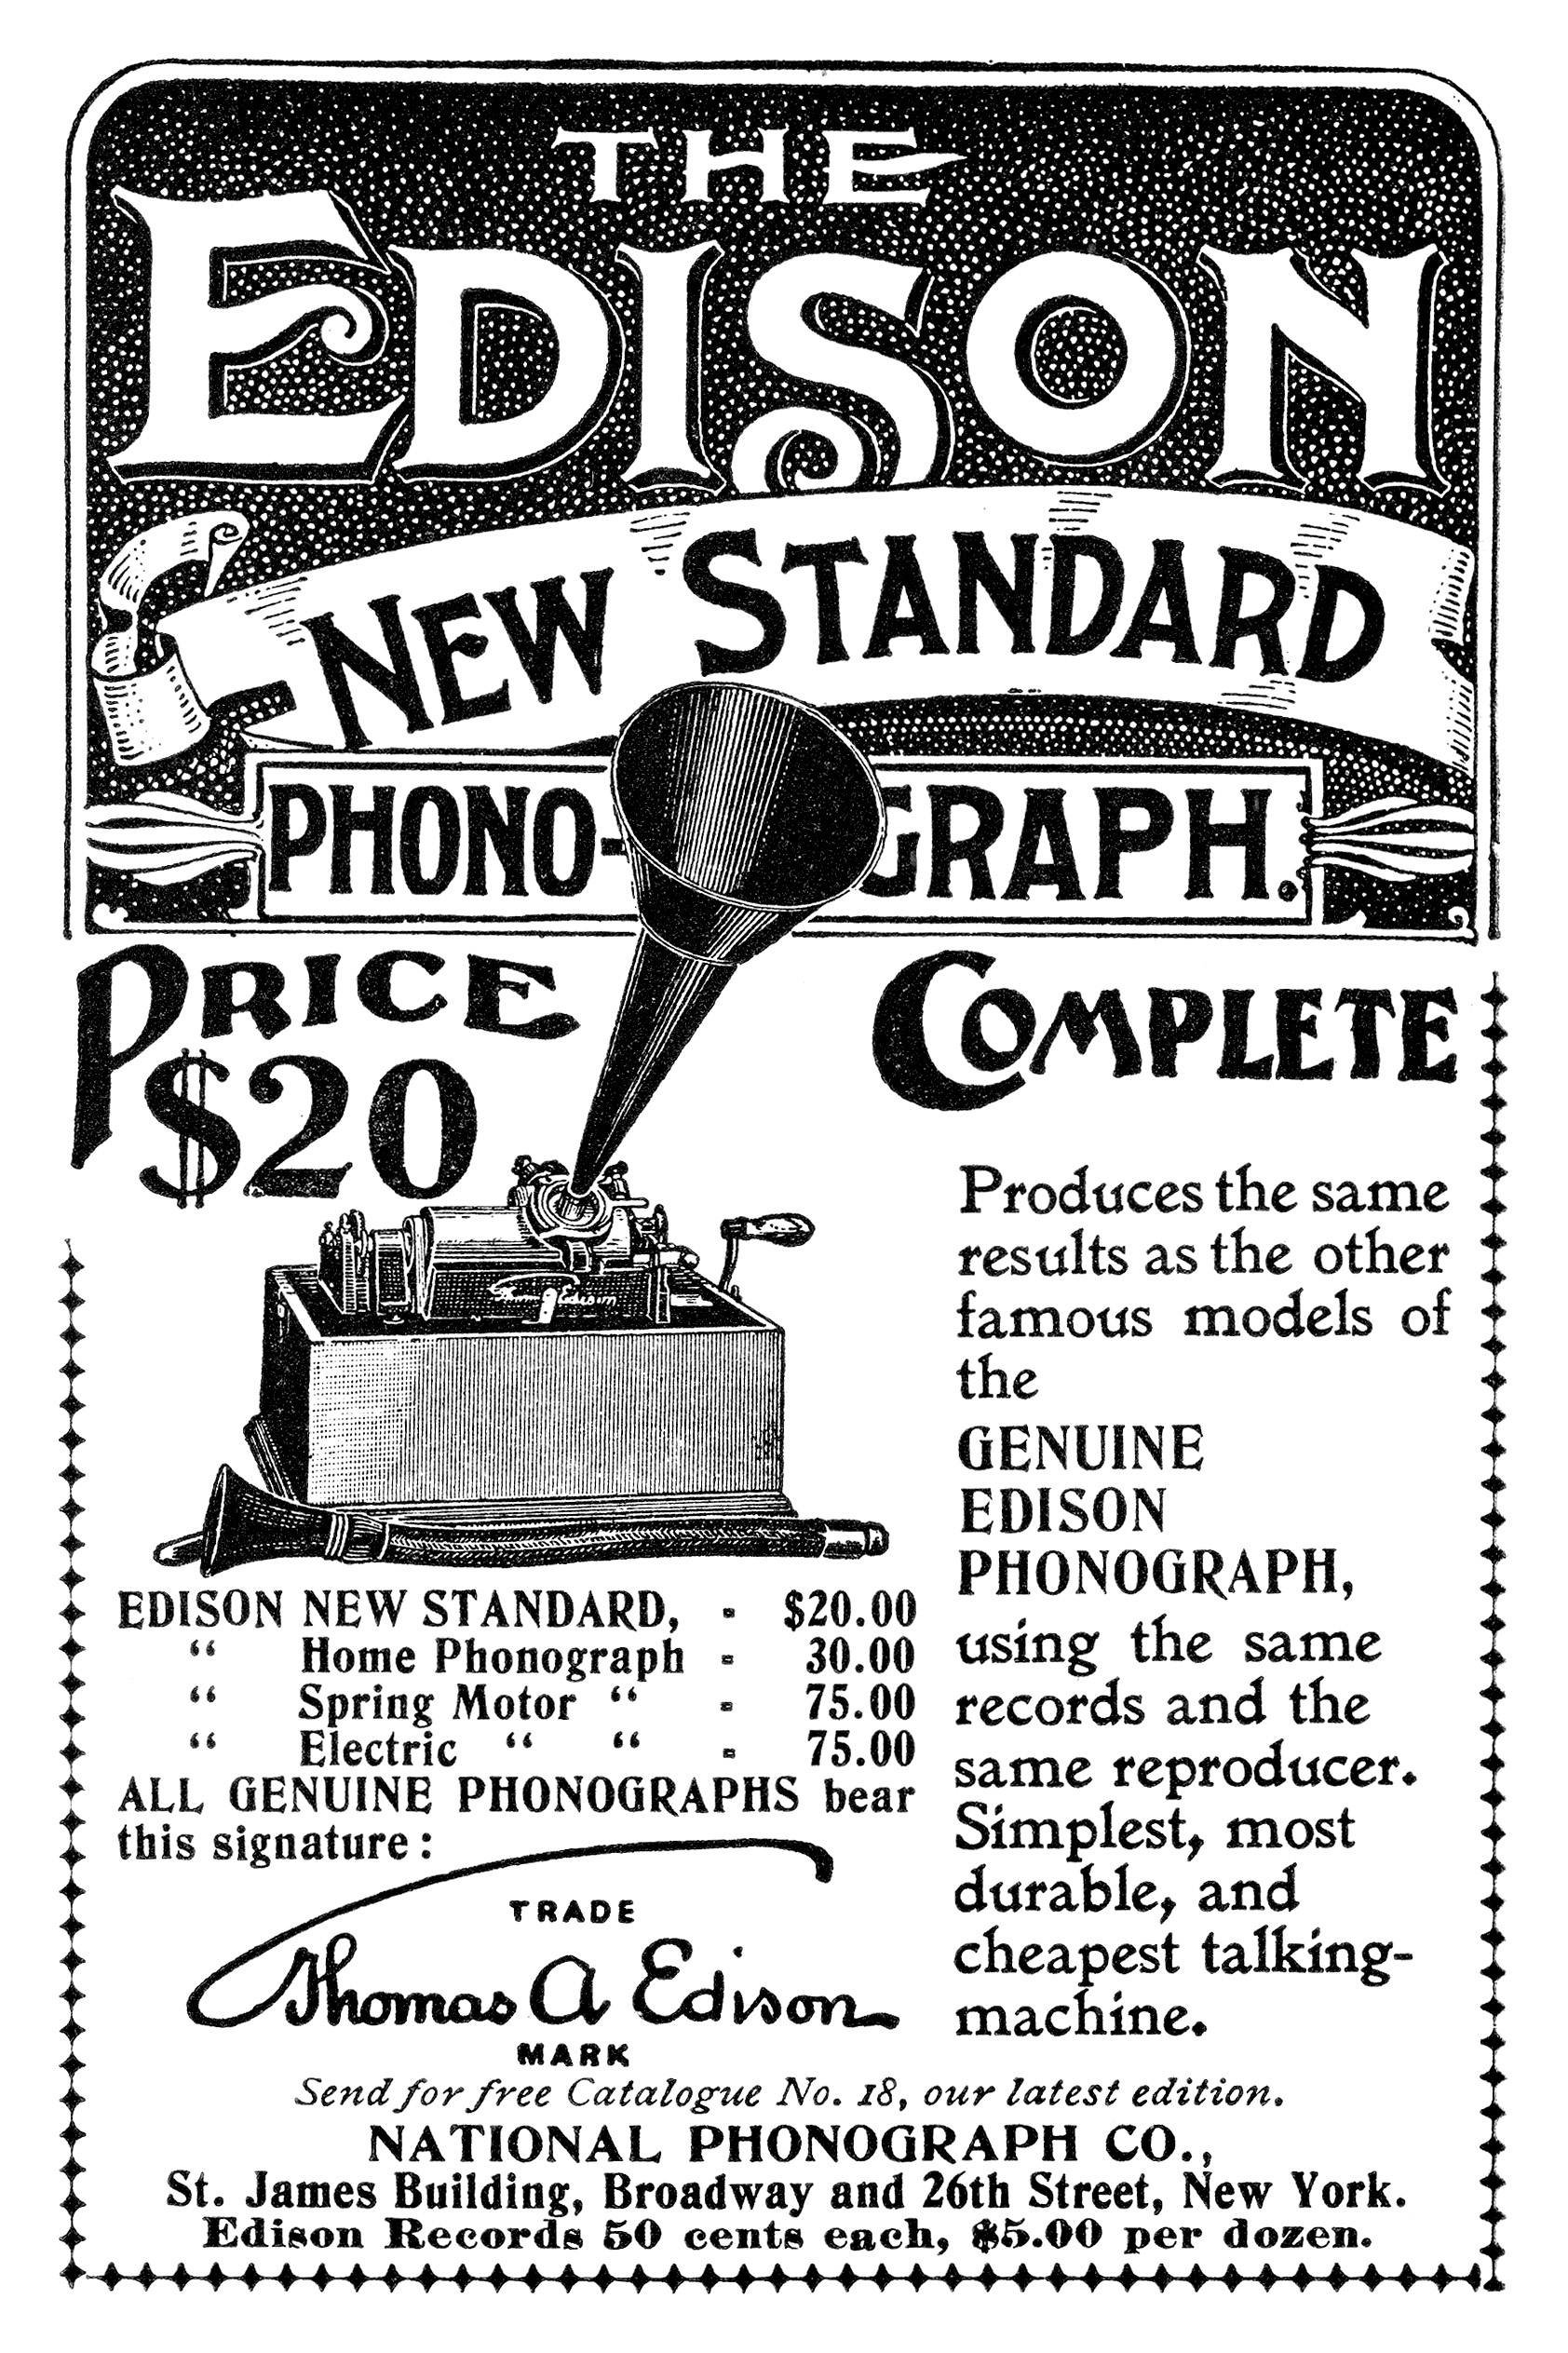 1898 ad for the New Standard Phonograph